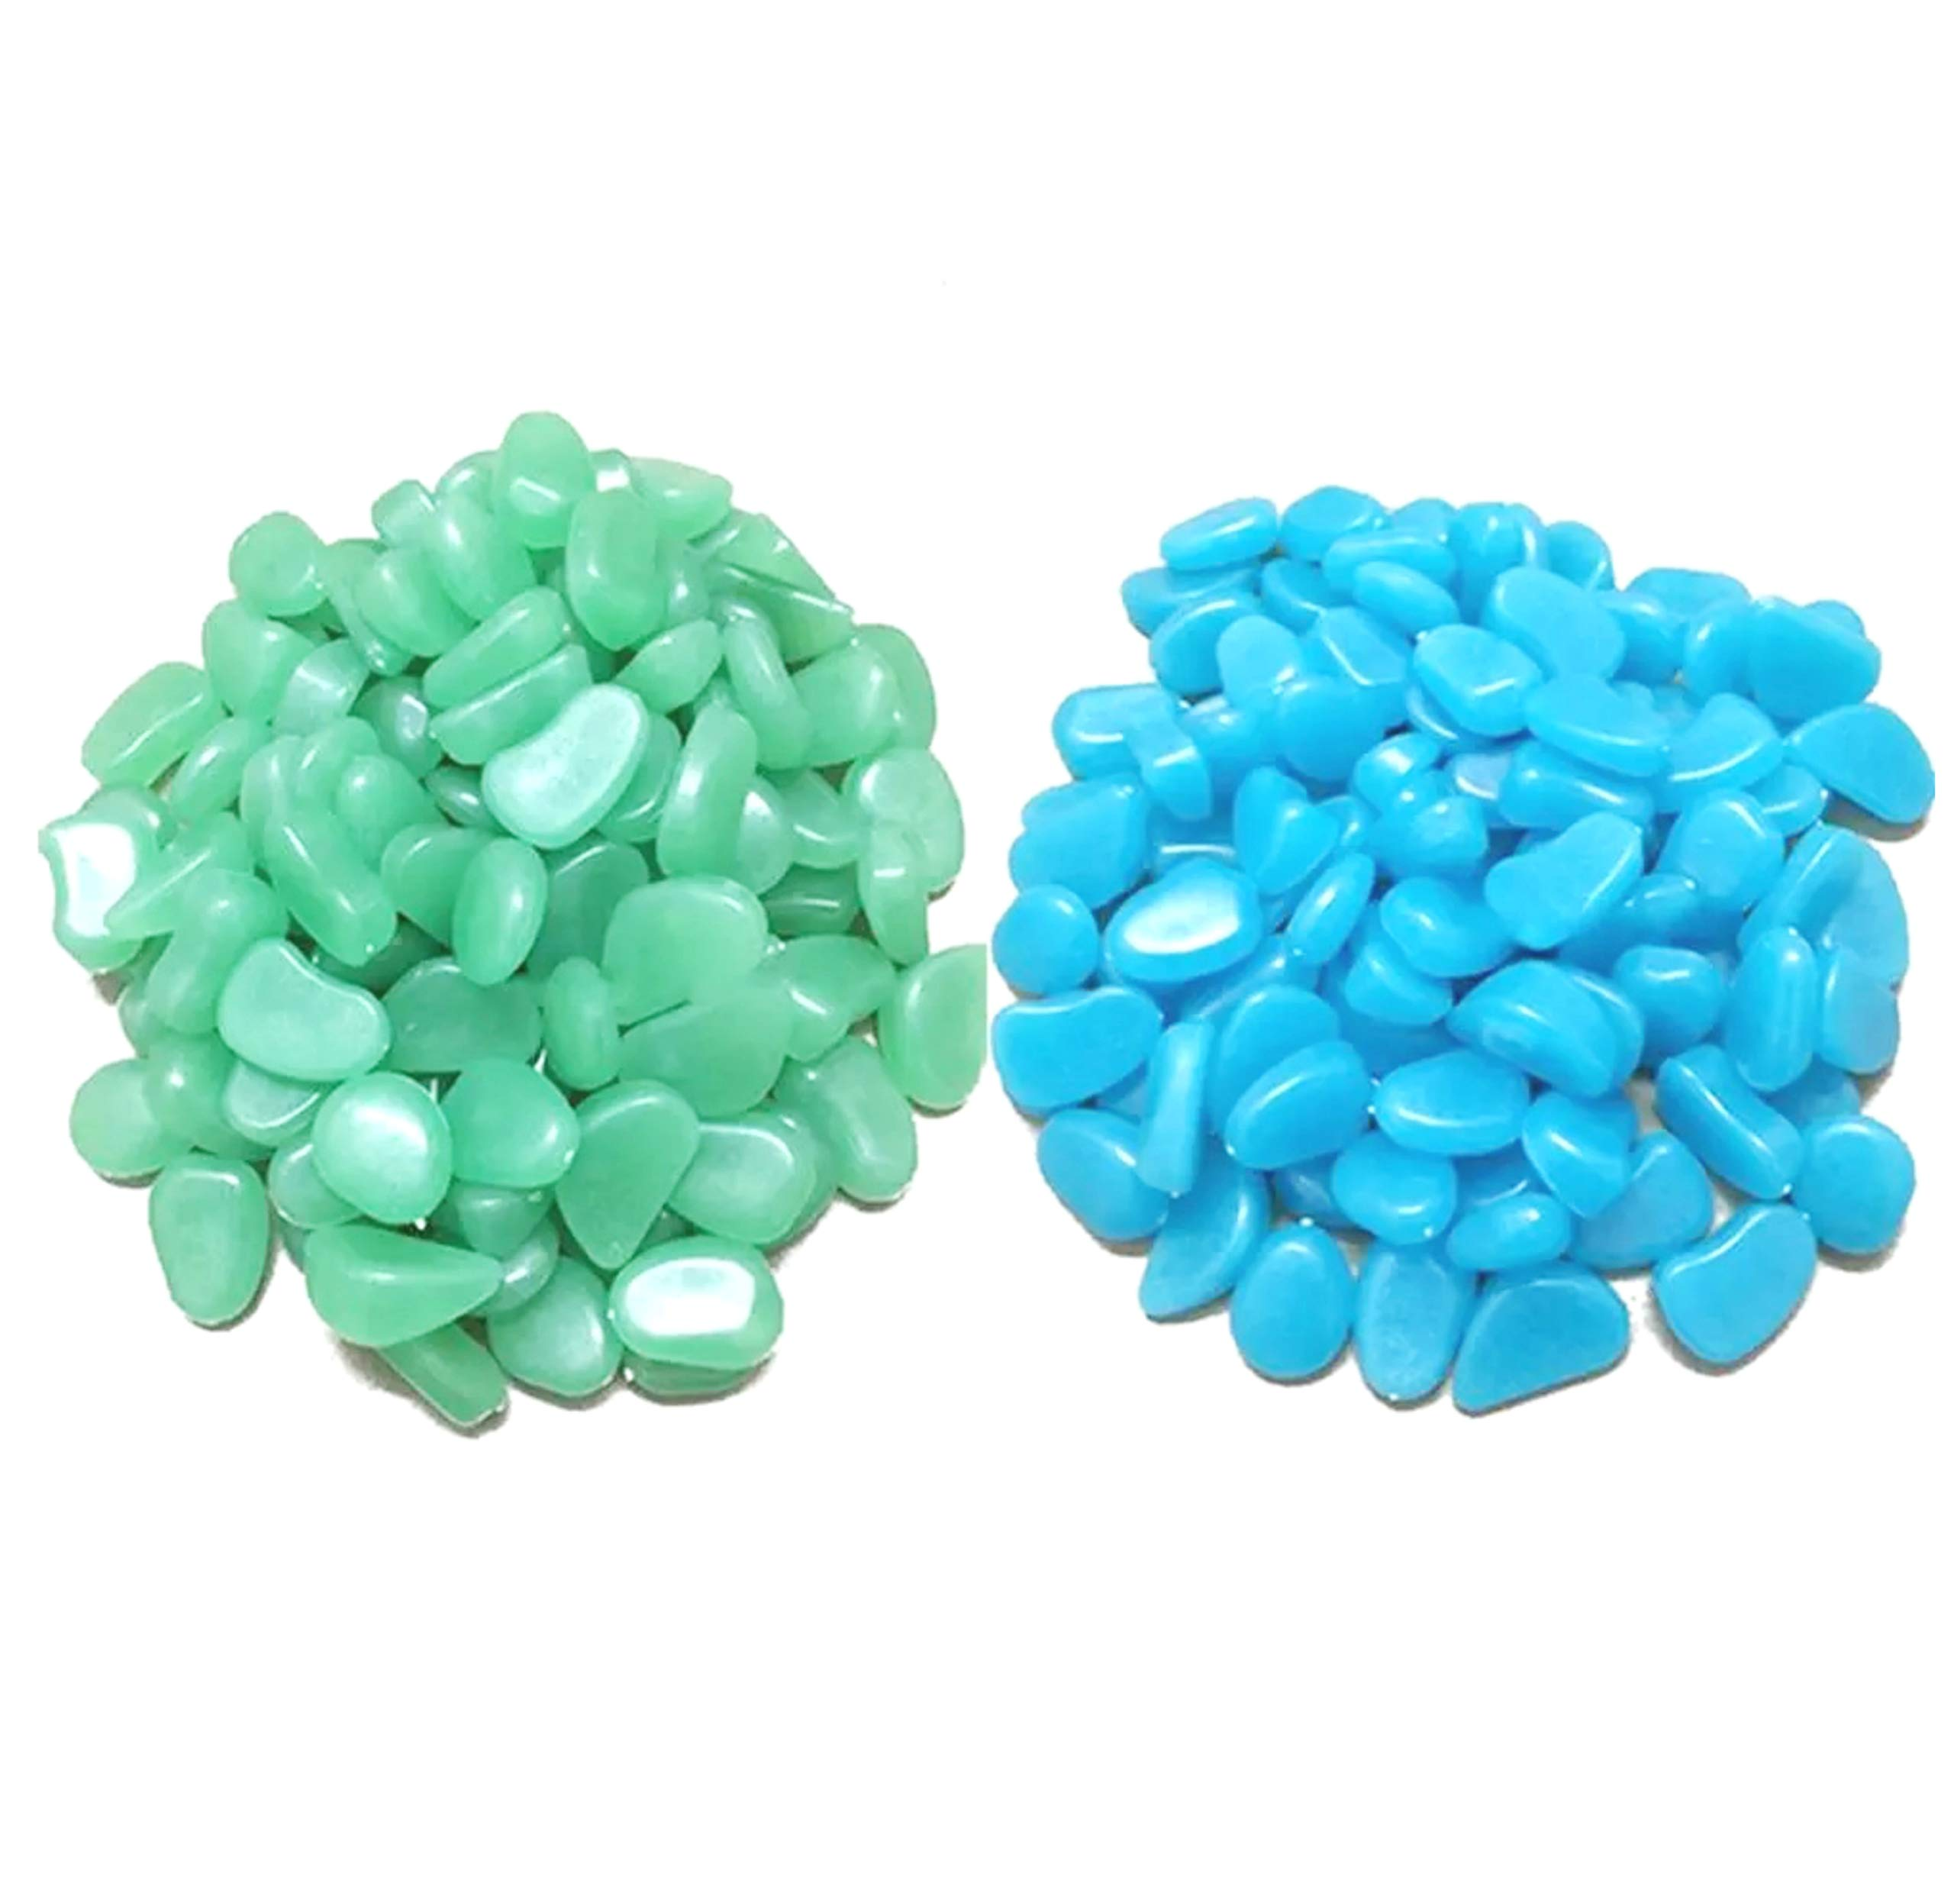 Luminous Stones Green Blue Decorative Stones Glow In The Dark Pebbles For Garden Patio Walkways Fish Tanks Home Office Garden Decor Glowing Pebbles - 200pcs (Green Blue)